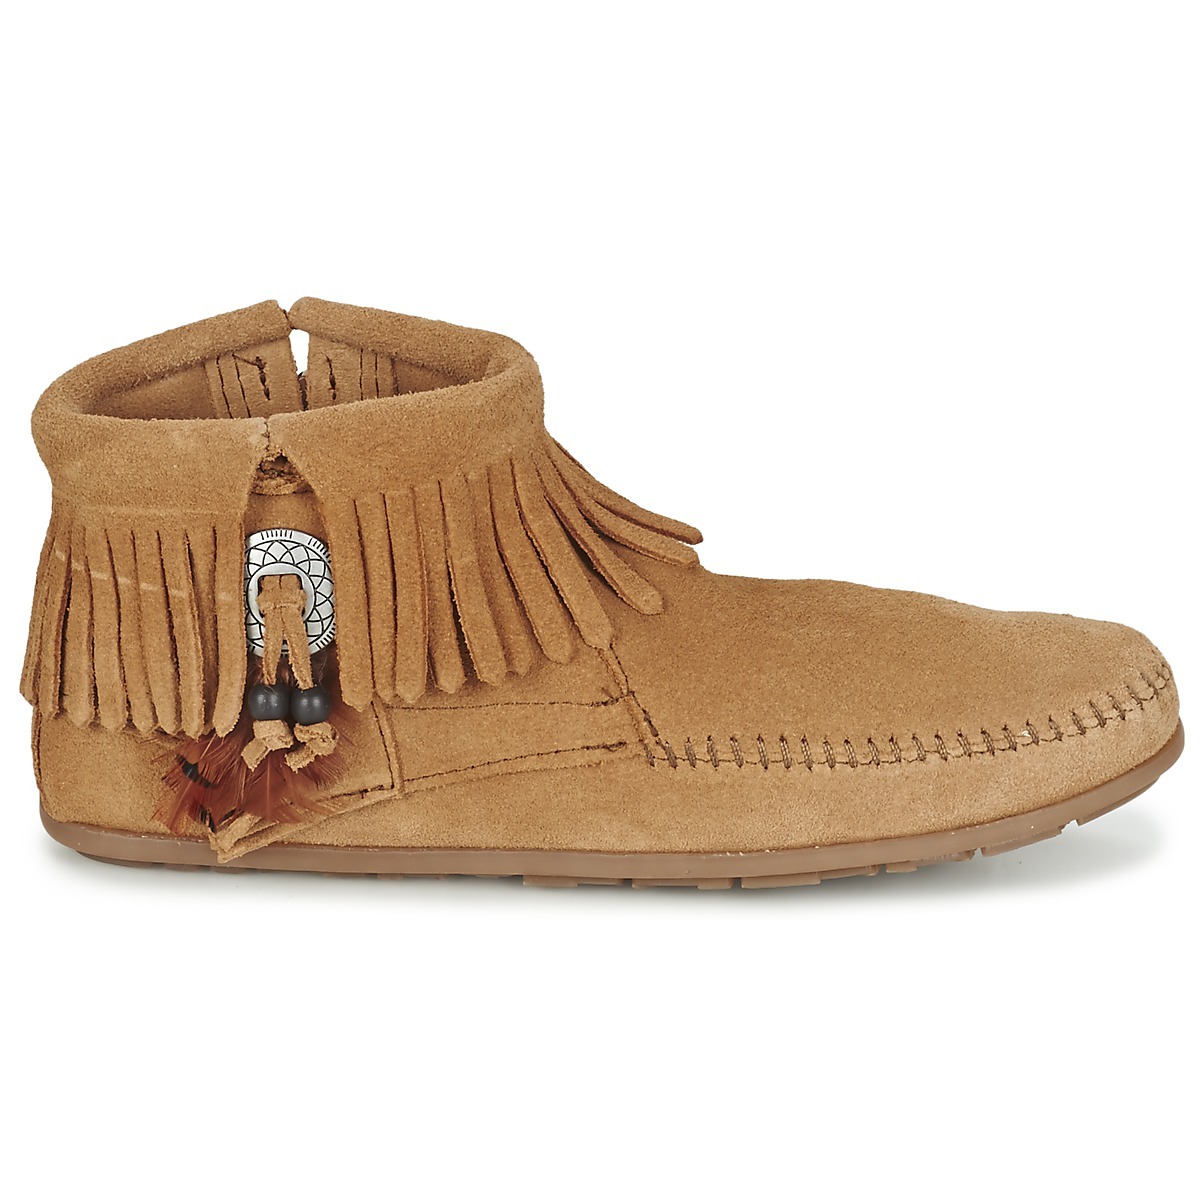 Minnetonka Boots Concho Feather Boot Minnetonka Minnetonka Boots Concho Feather Boot PkOXZiu